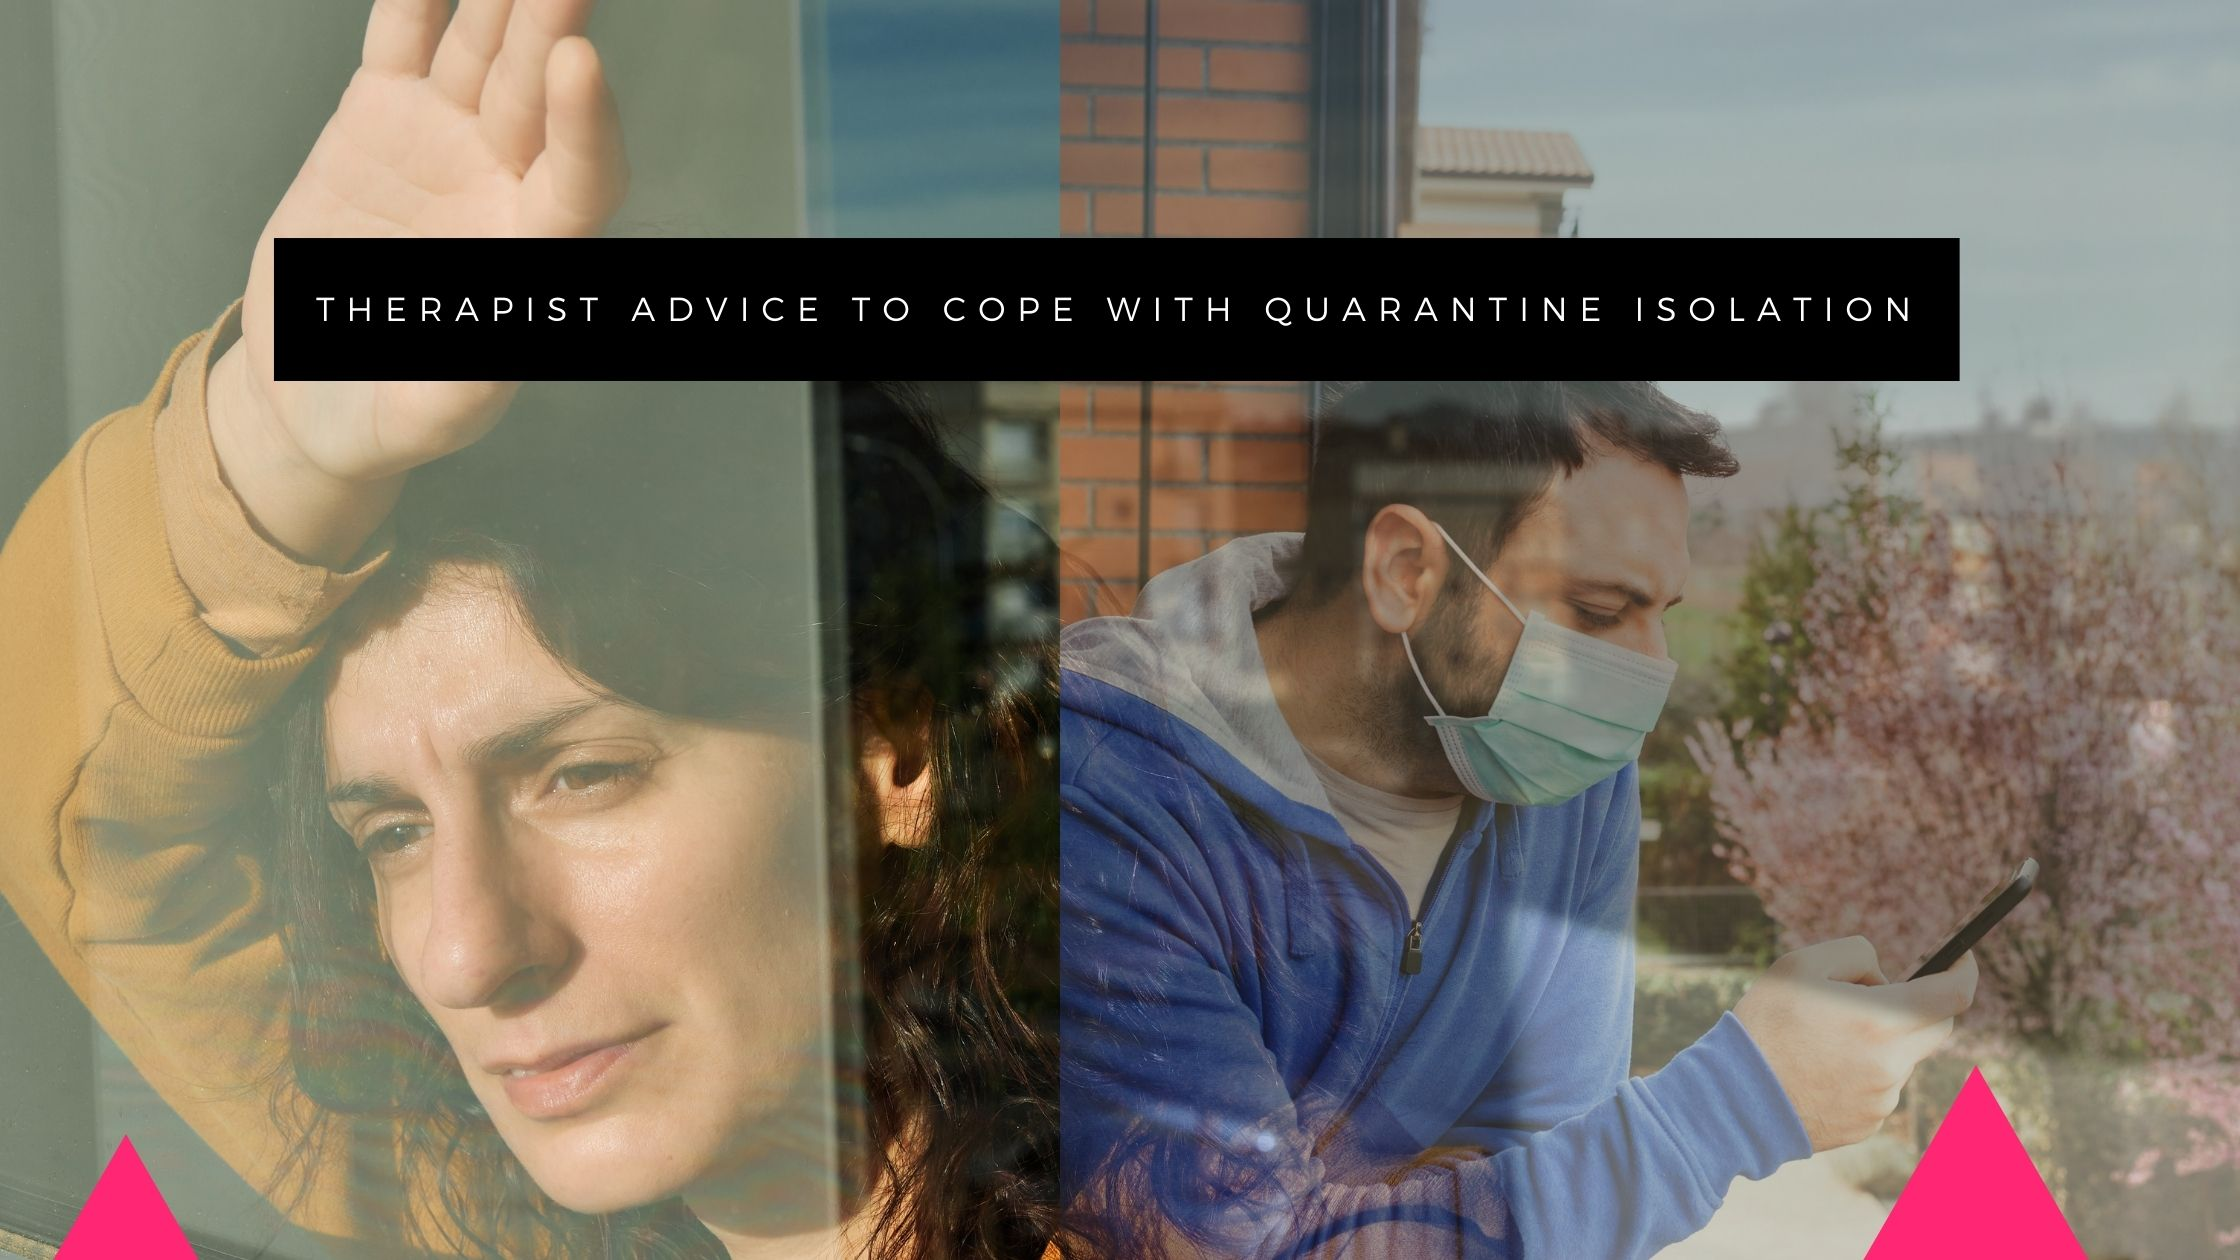 Therapist-advice-to-cope-with-quarantine-isolation